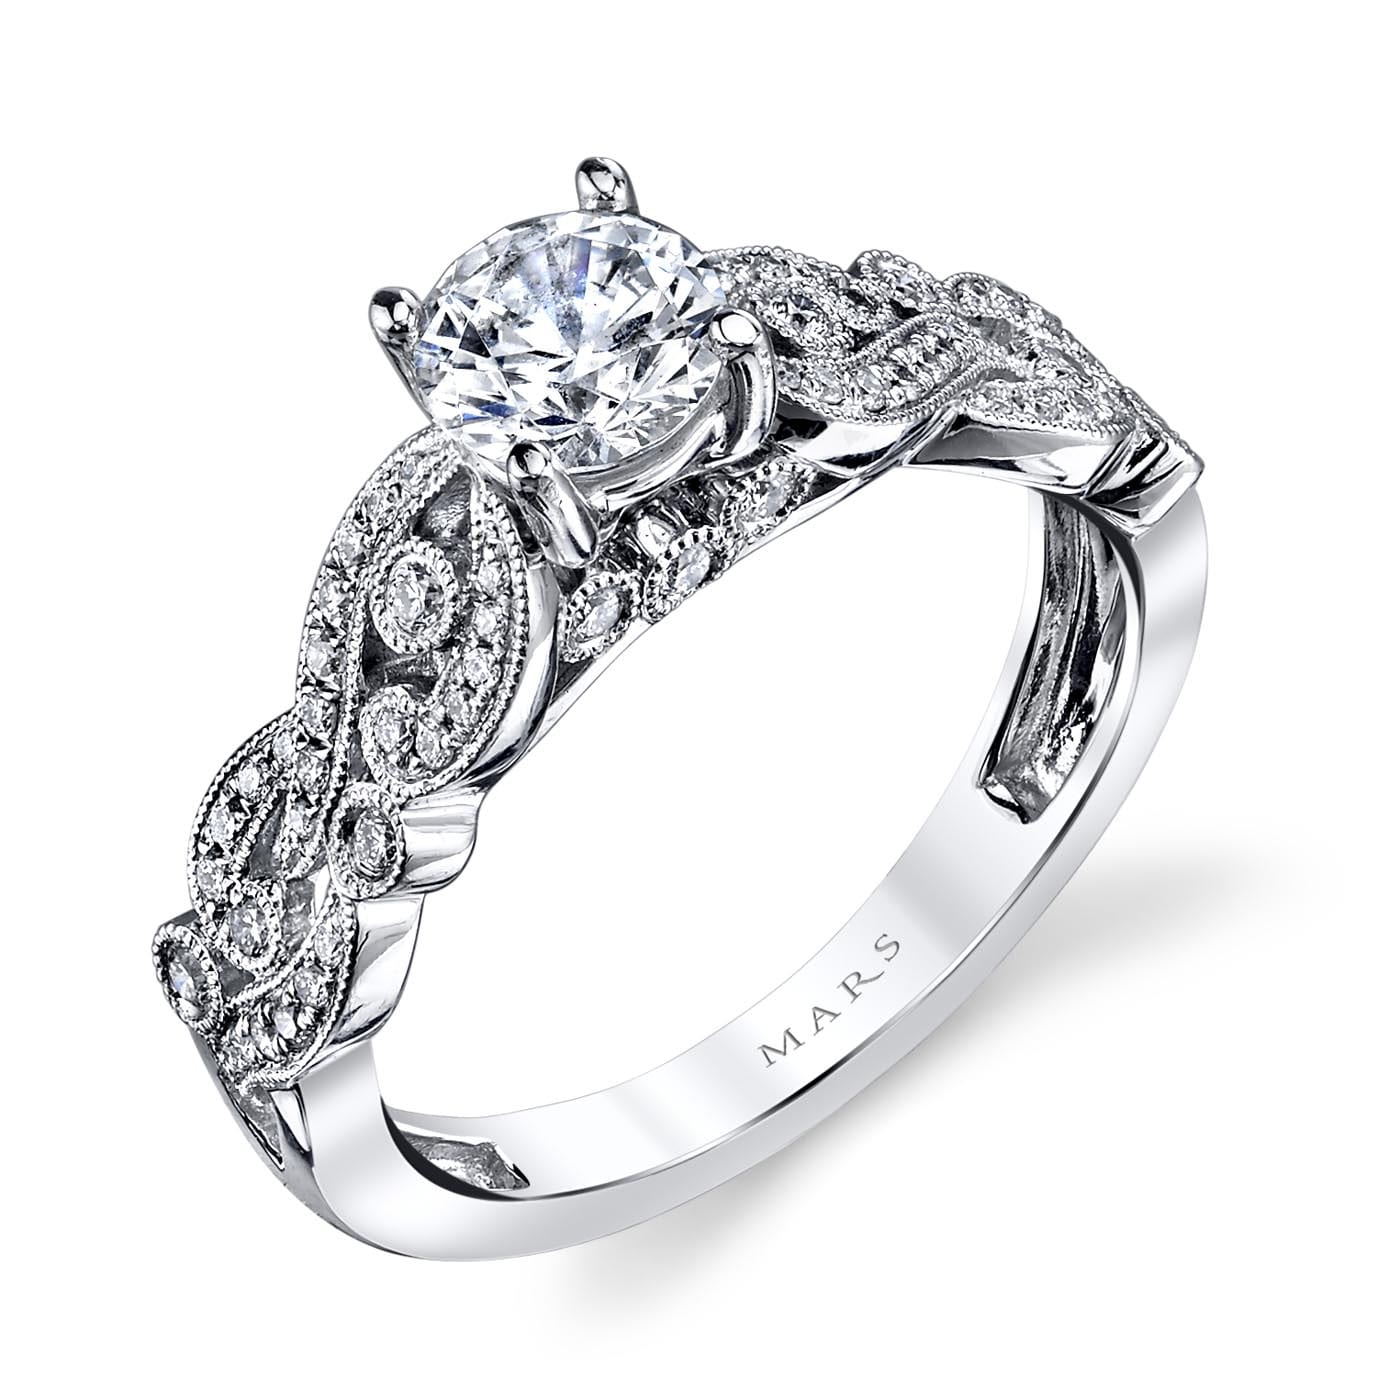 Floral Engagement RingStyle #: MARS 26440